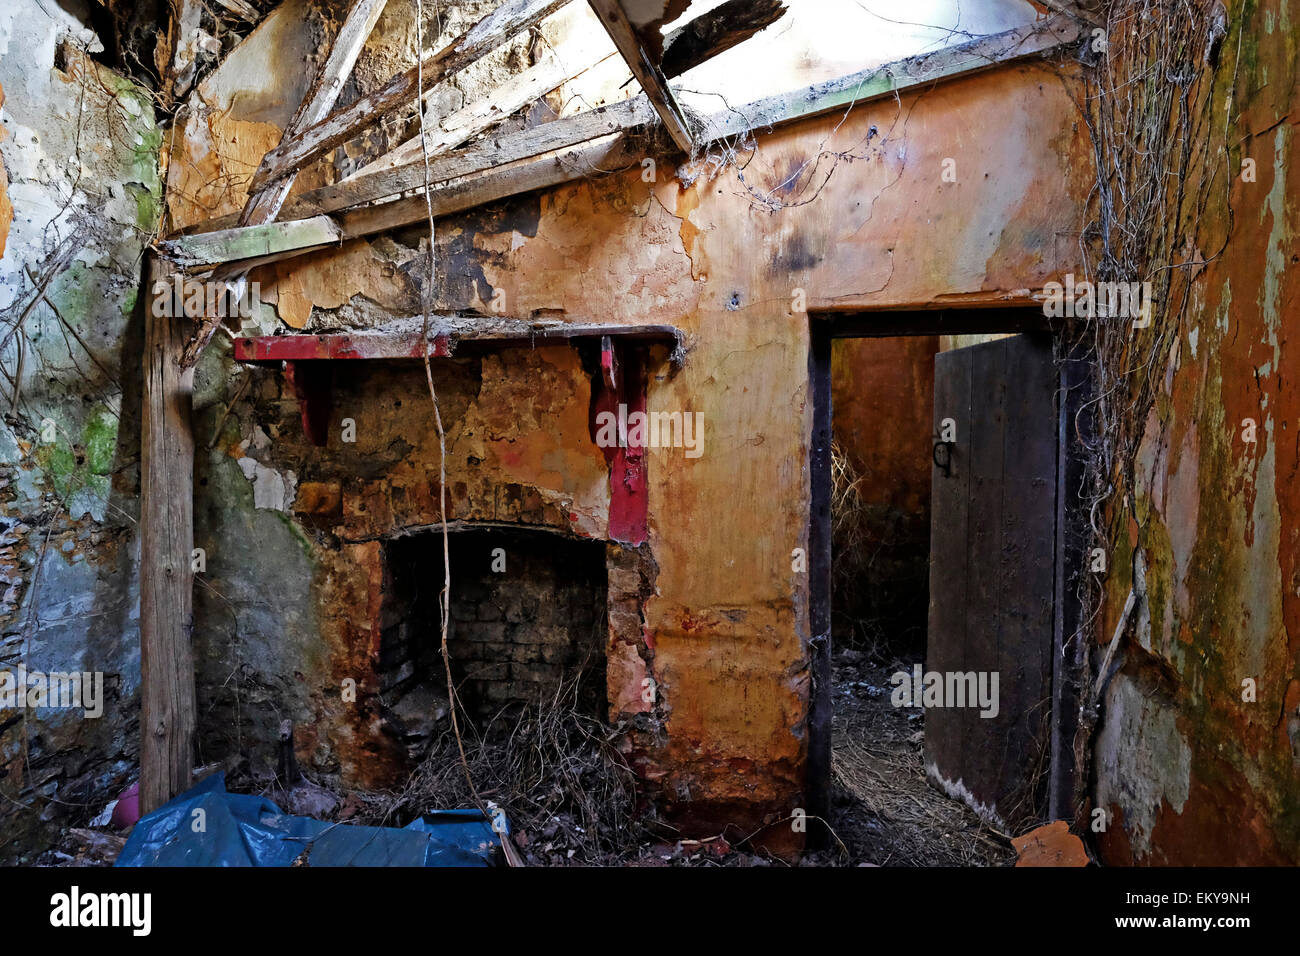 the ruined and shabby interior of old abandoned gate lodge house